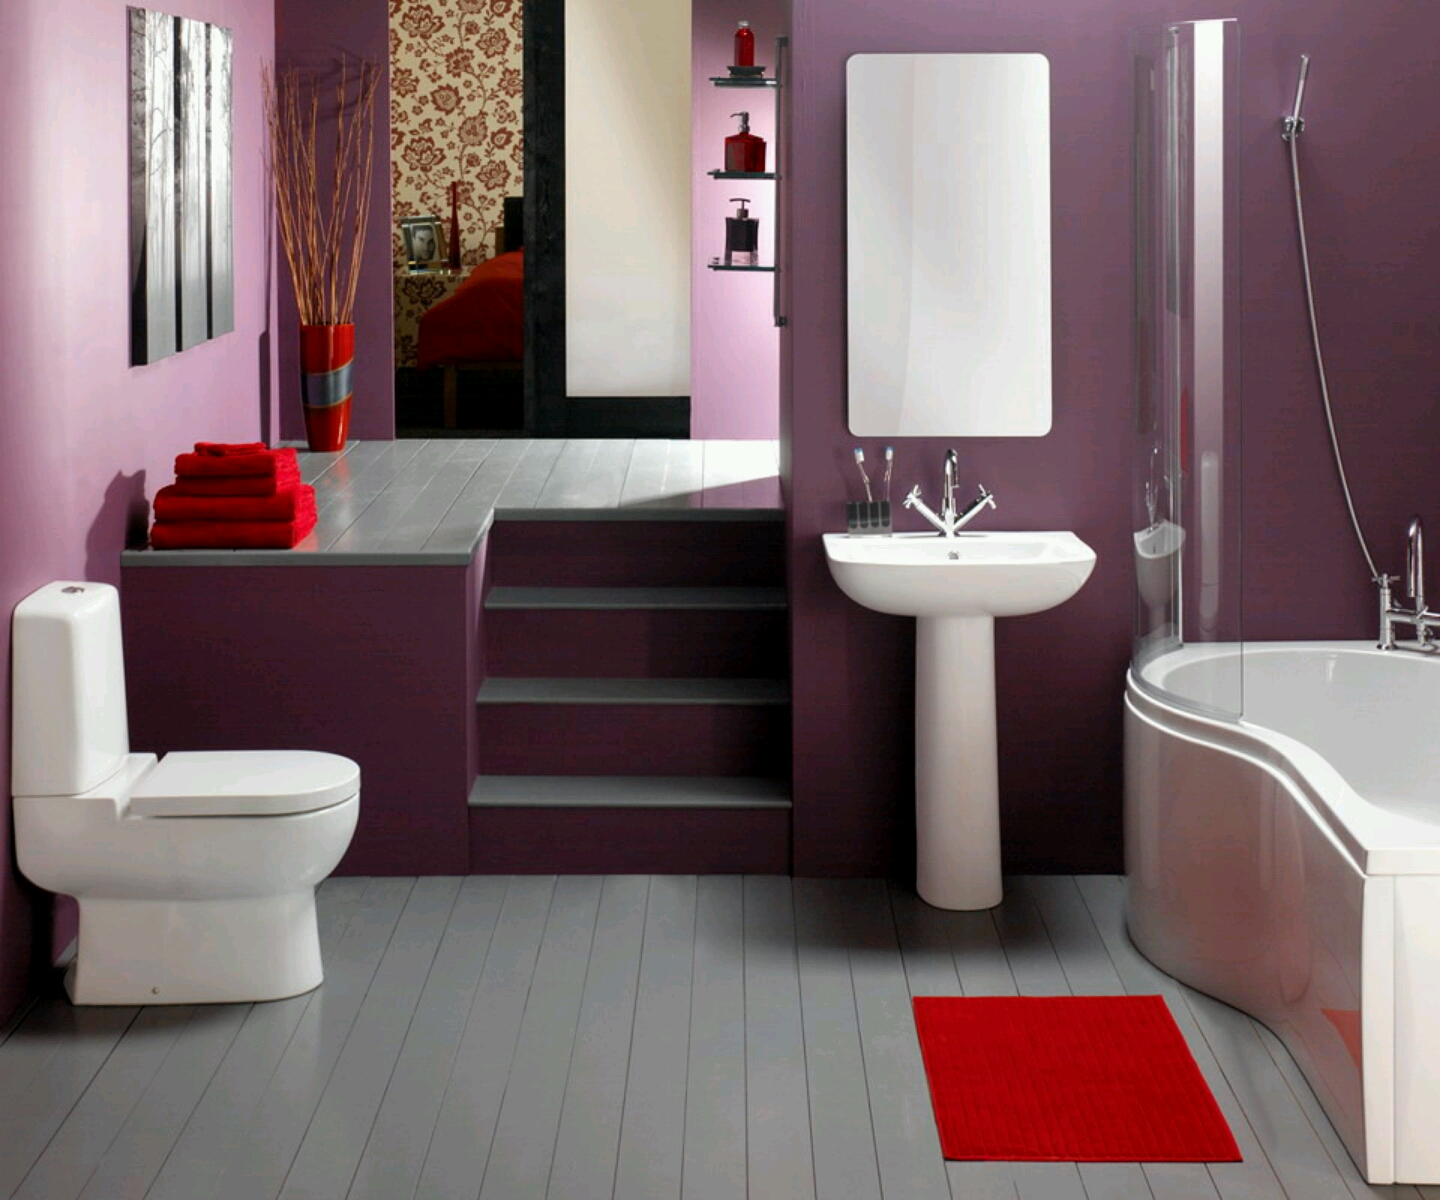 New home designs latest luxury modern bathrooms designs decoration ideas - Modern bathroom decorations ...